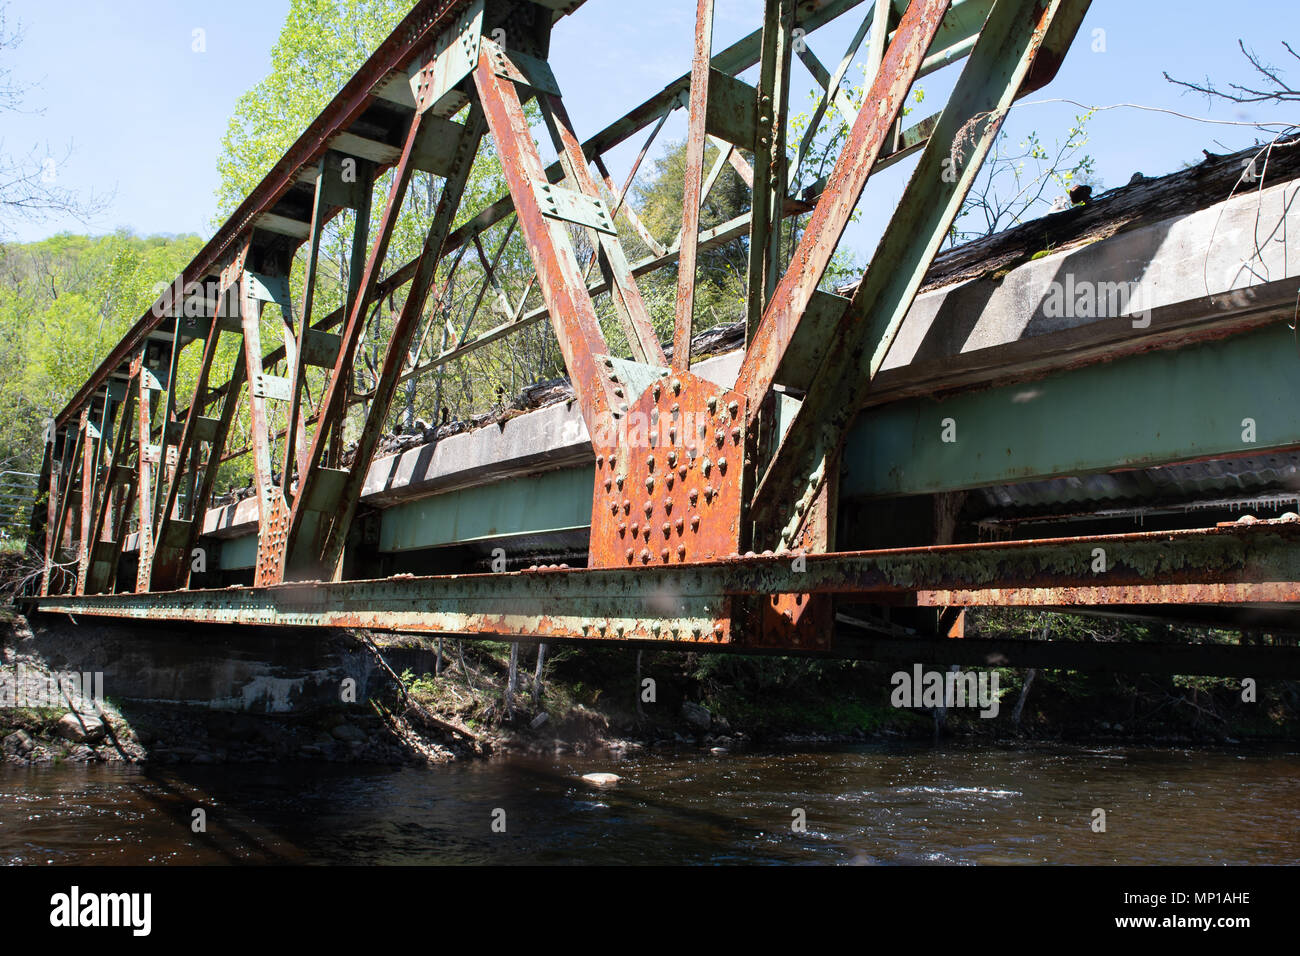 An old deteriorating closed bridge across the Sacandaga River in the Adirondack Mountains, NY, USA. - Stock Image